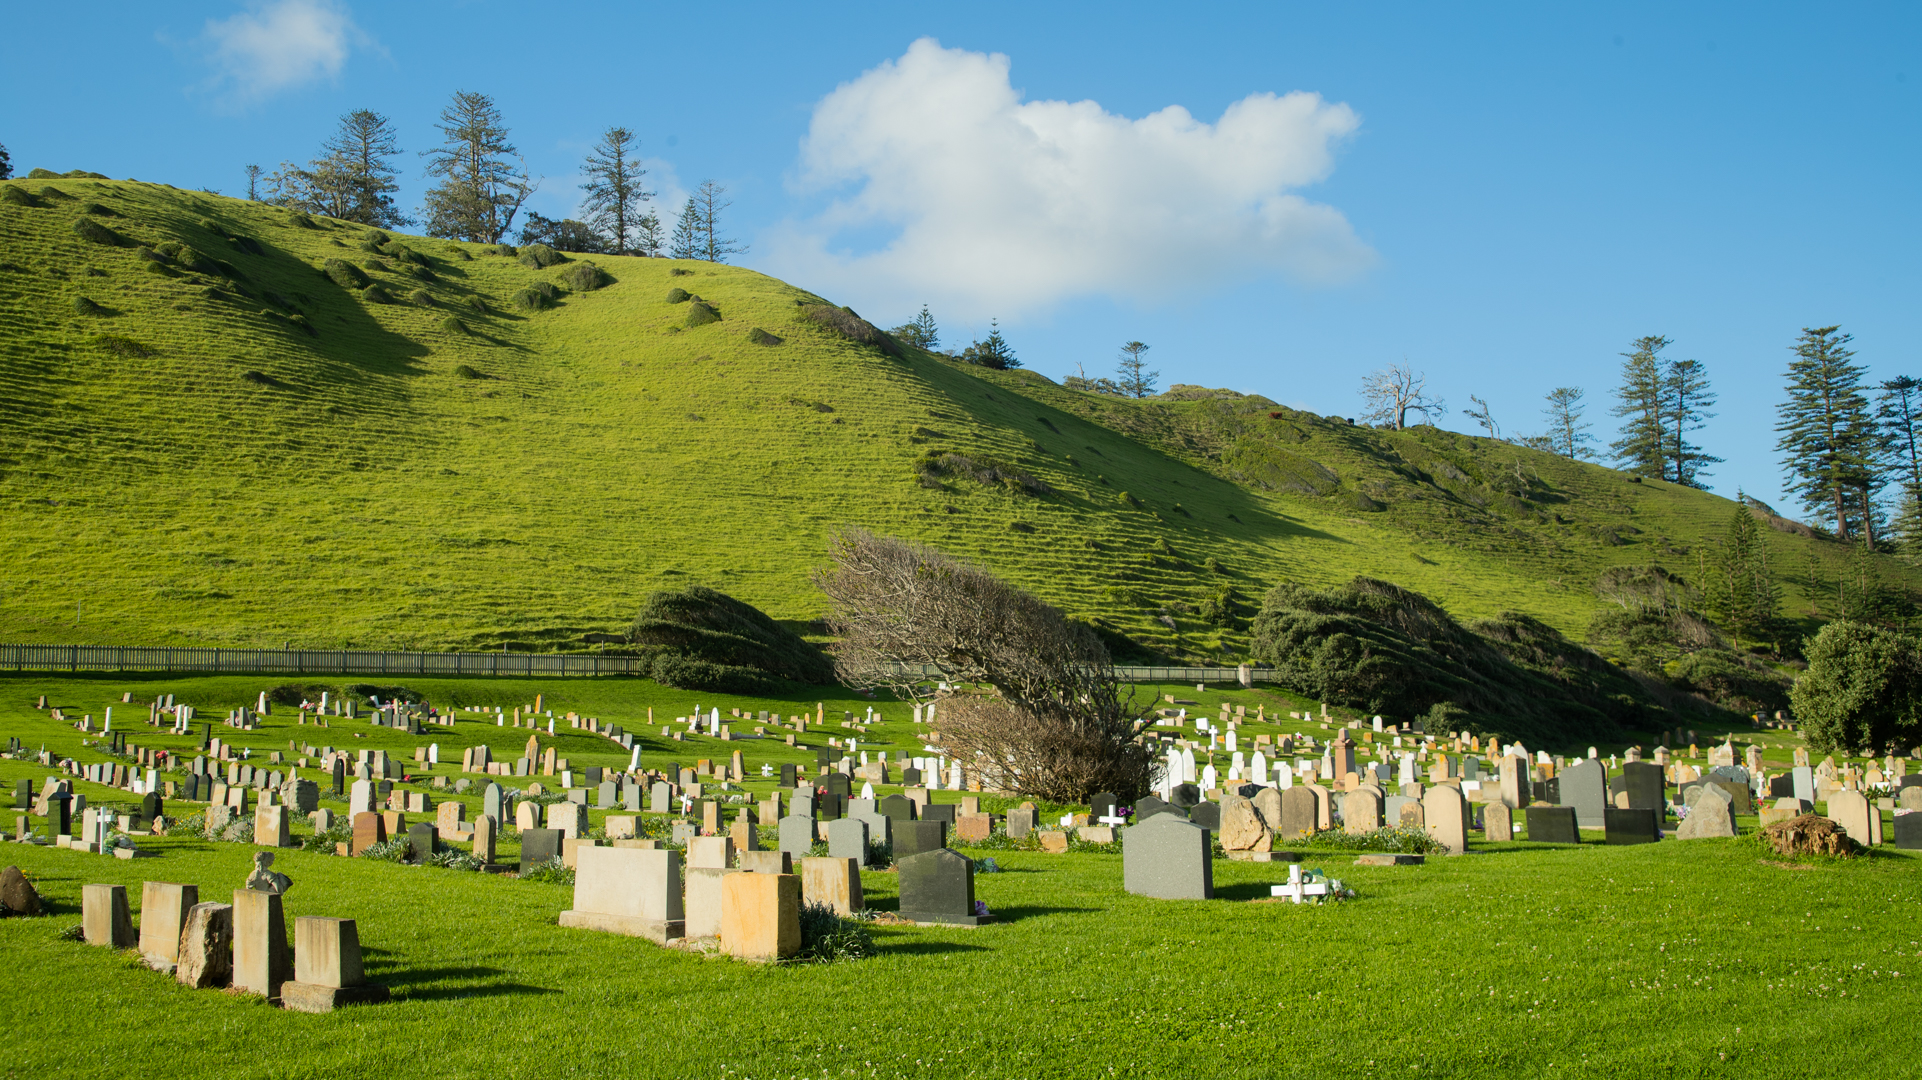 View of the backs of scores of raised gravestone in the cemetery. A steeply sloped hill in the background with the tops of pine trees visible form the other side.